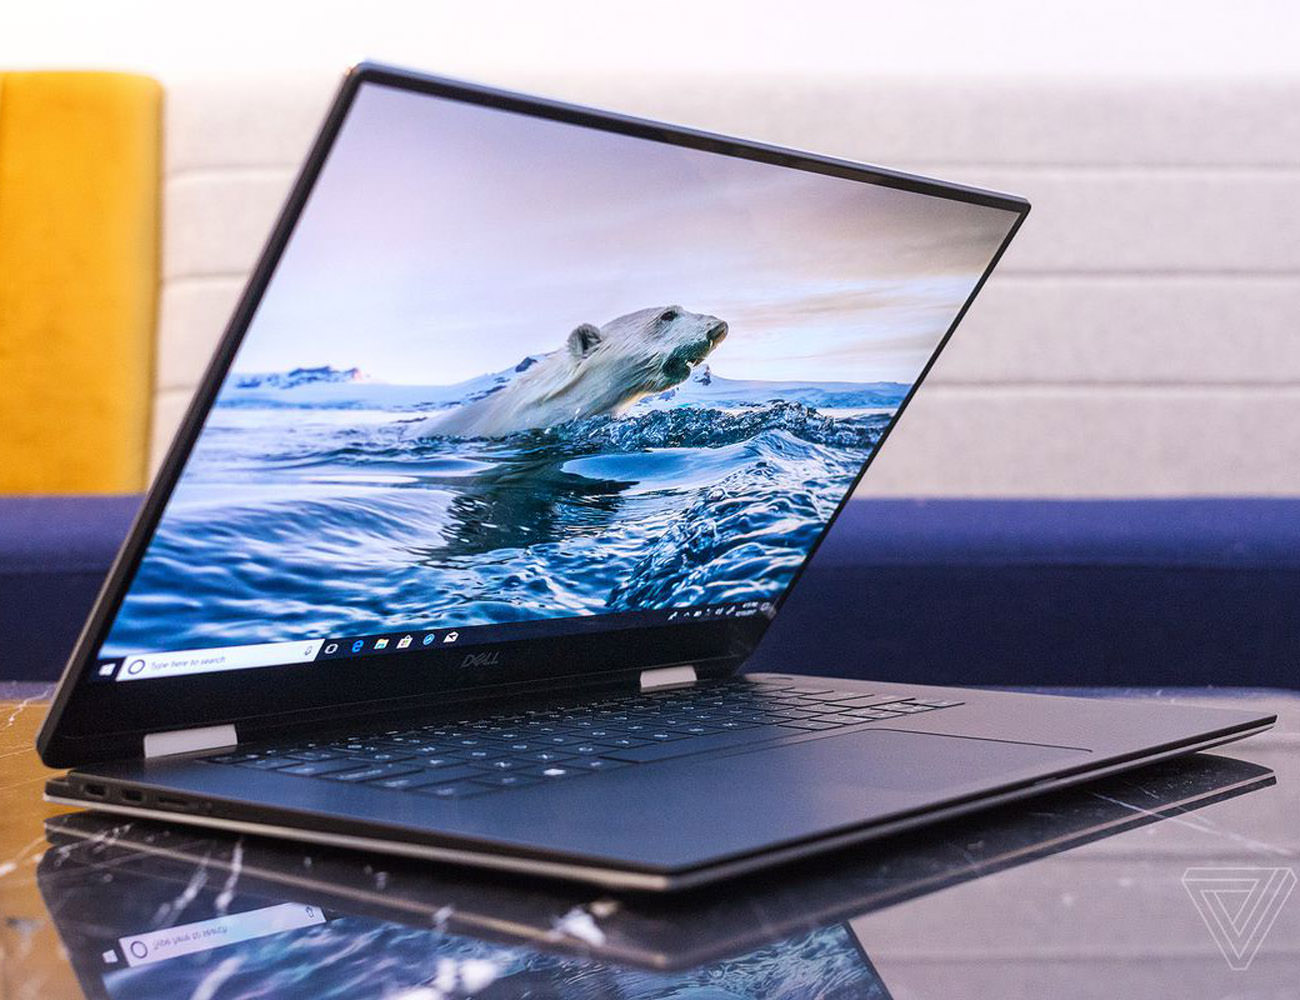 New Dell XPS 15 2-in-1 Touchscreen Laptop